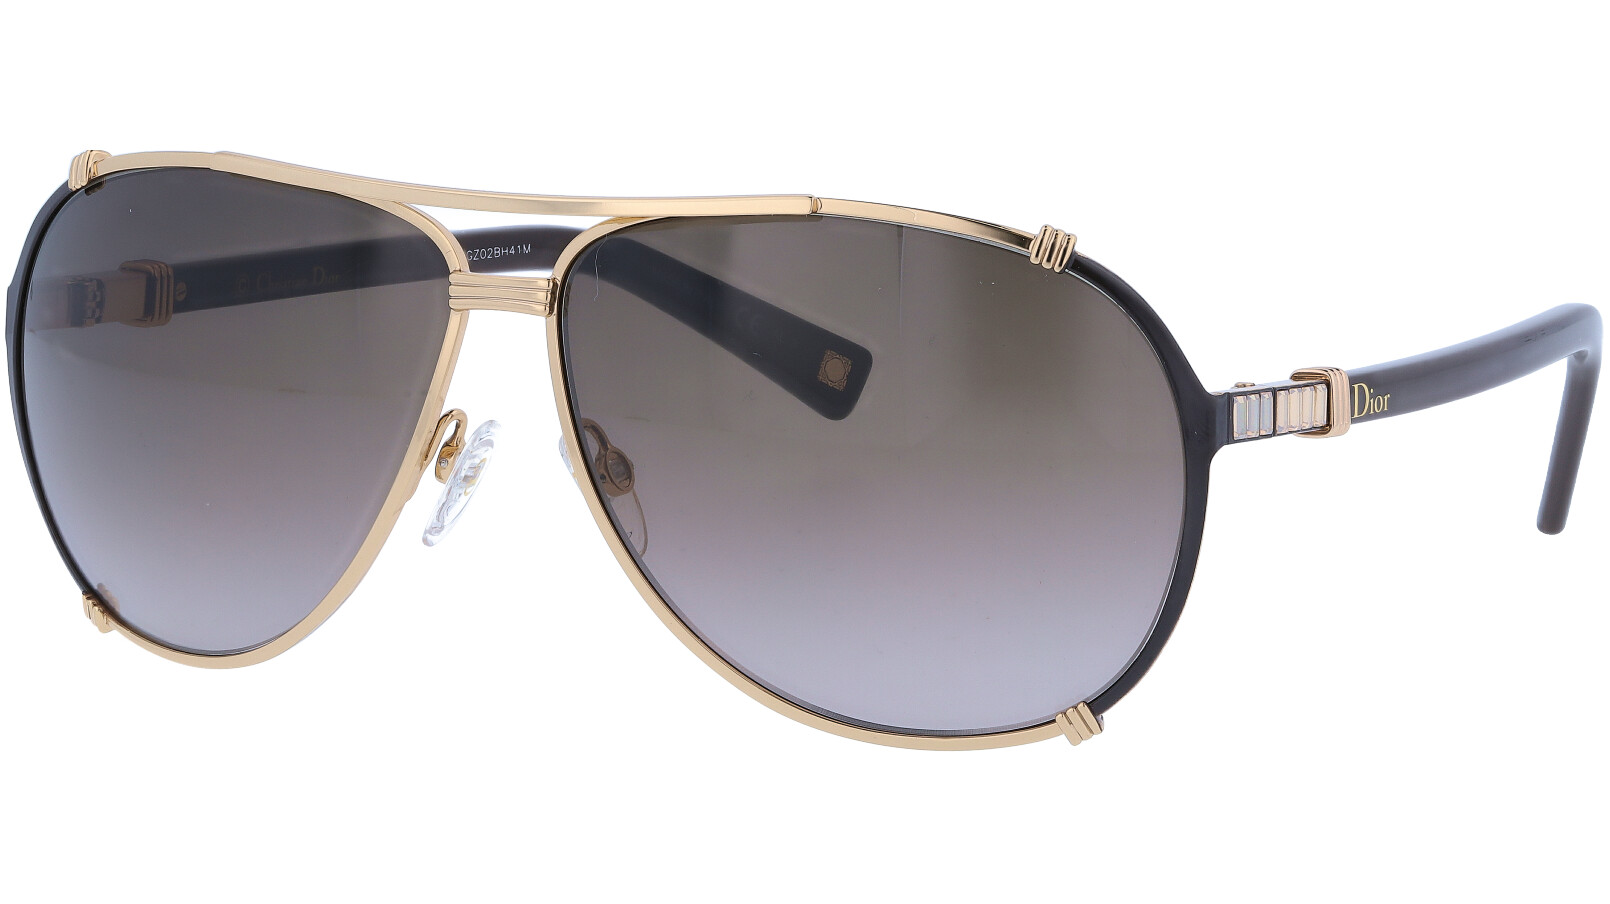 DIOR DIORCHICAGO2STR NB2P9 63 RESGDPK Sunglasses